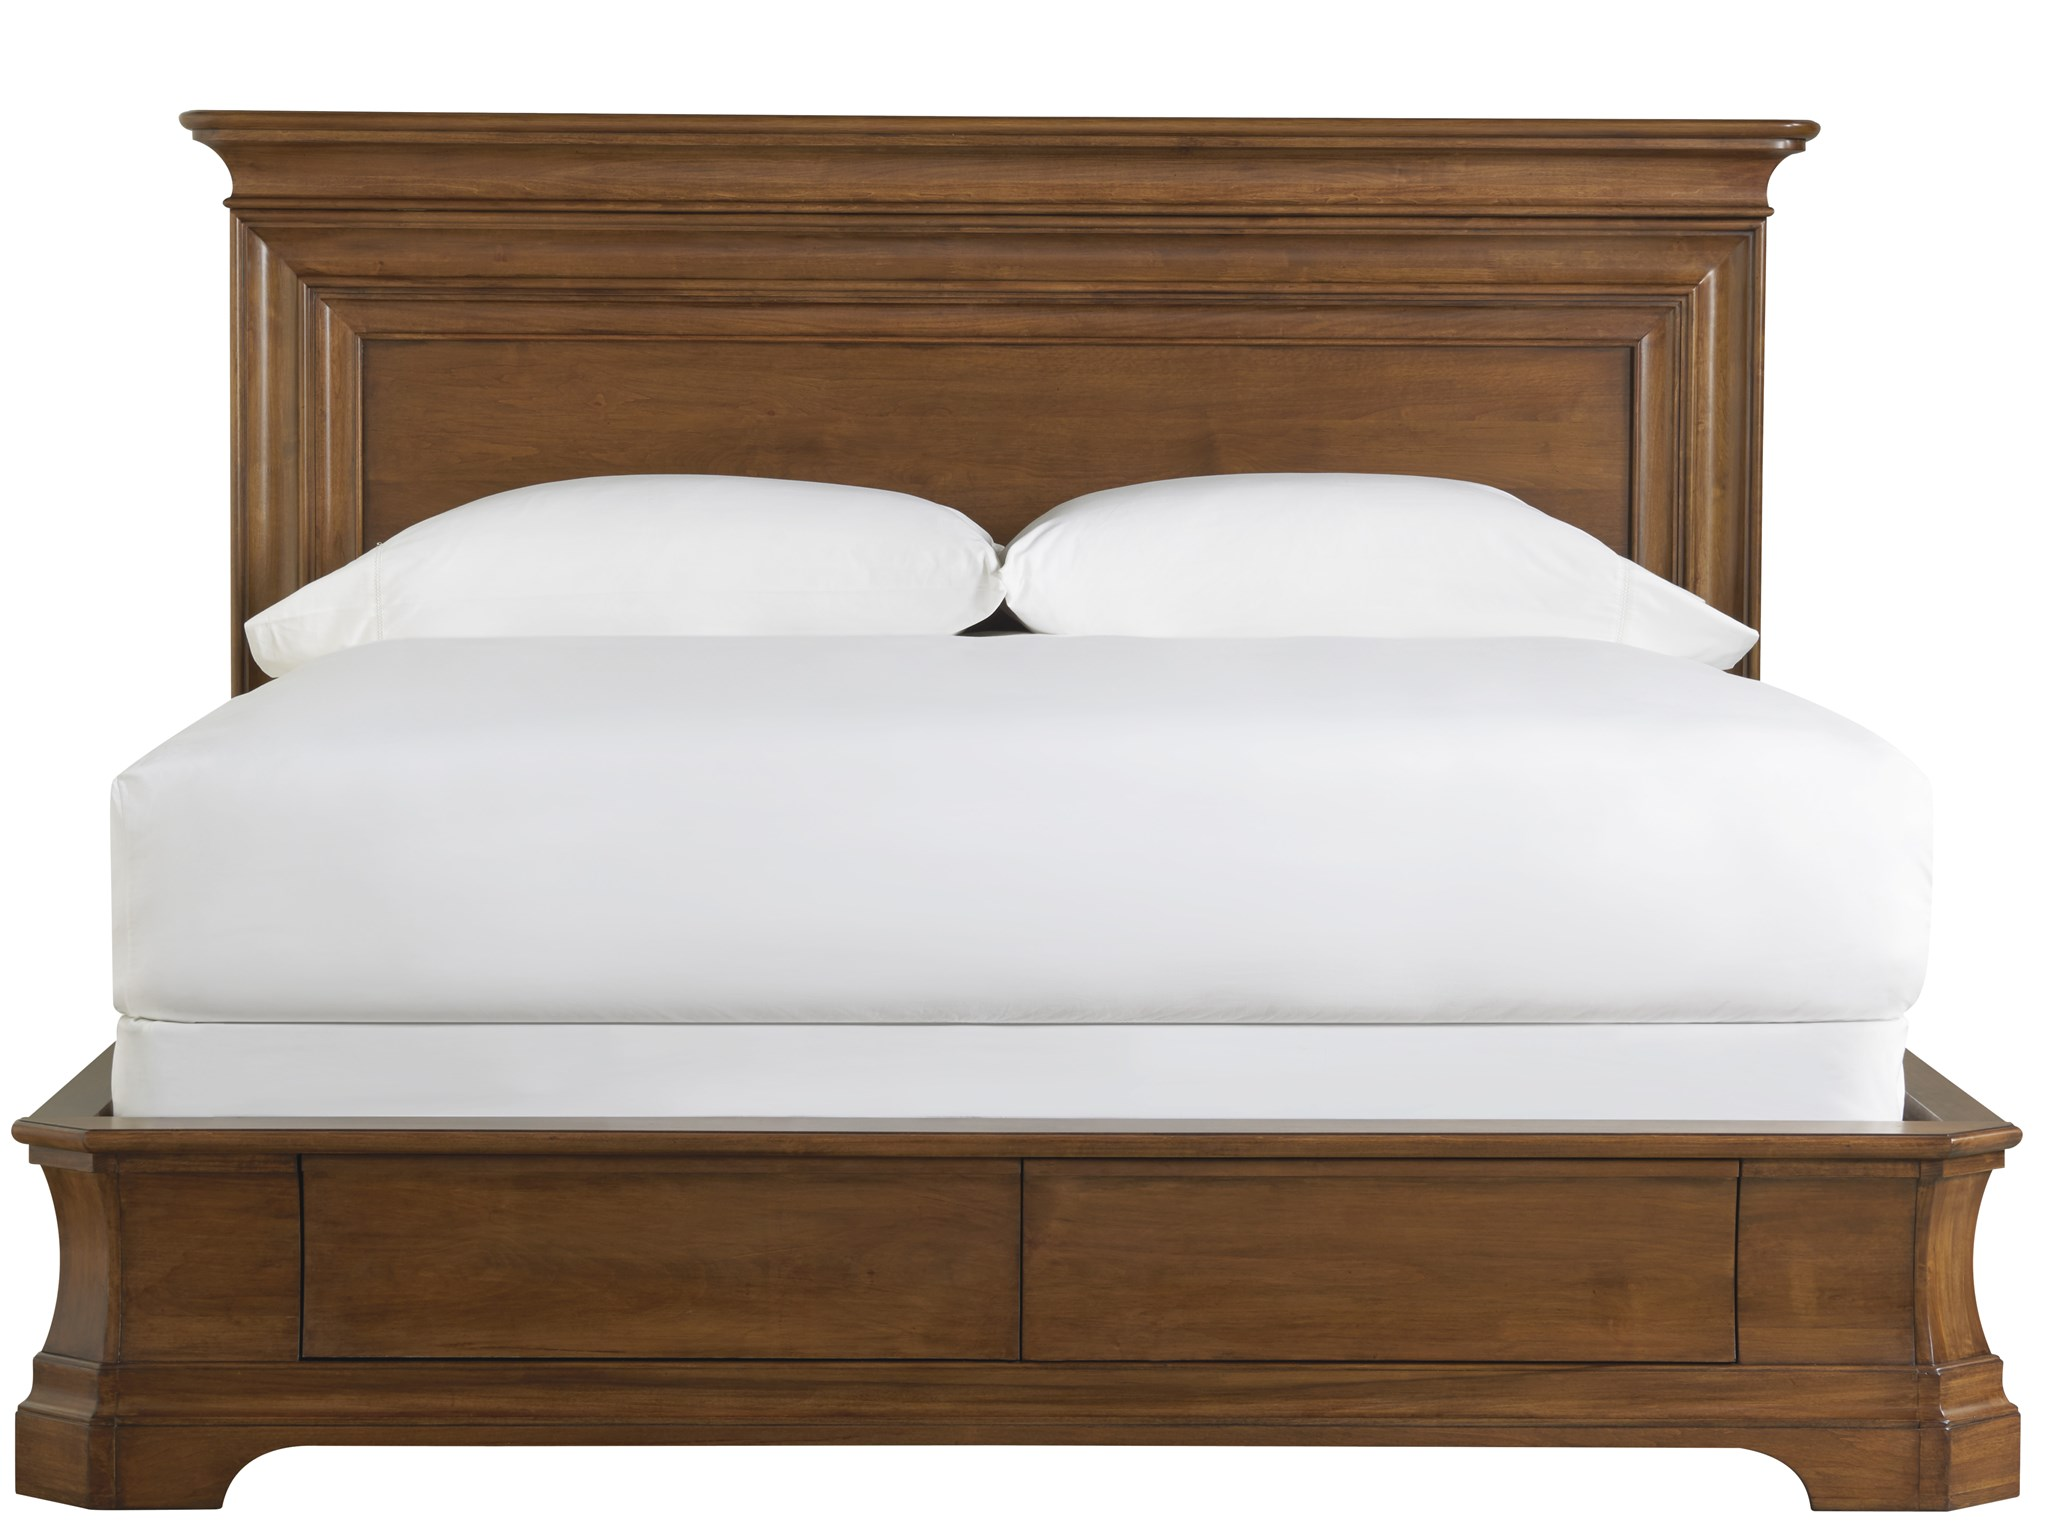 Kingsbury Queen Storage Bed